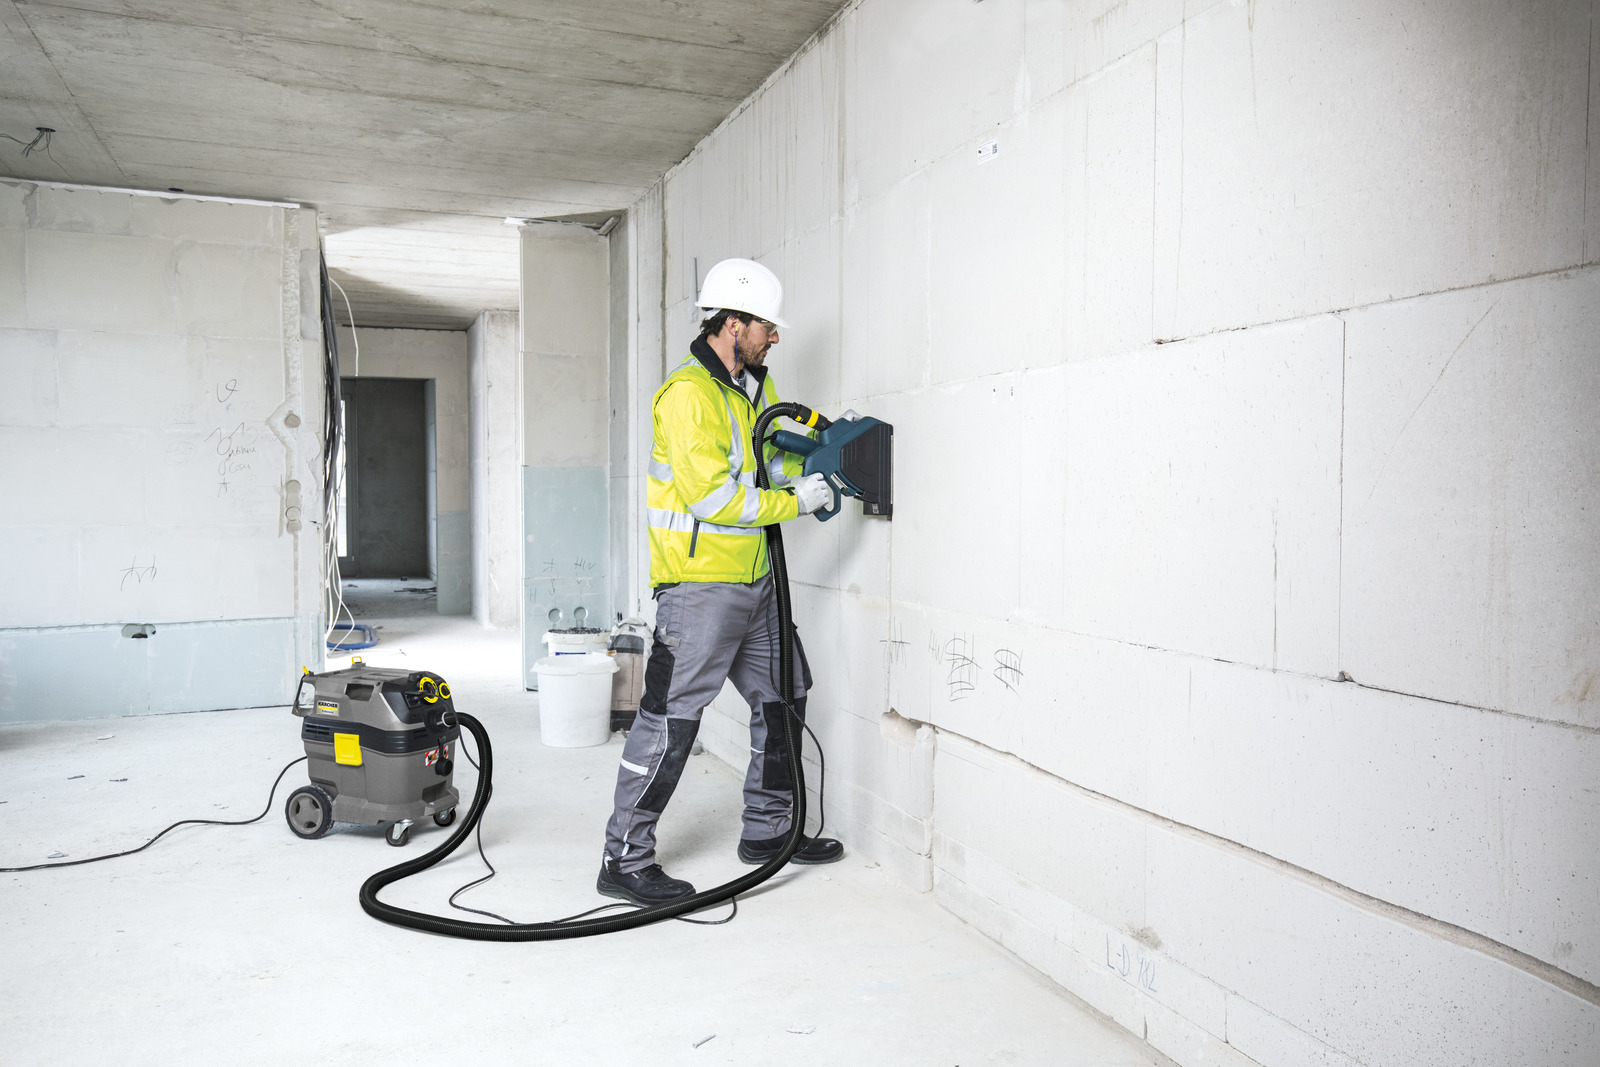 Safety vacuum cleaners protect operators' health